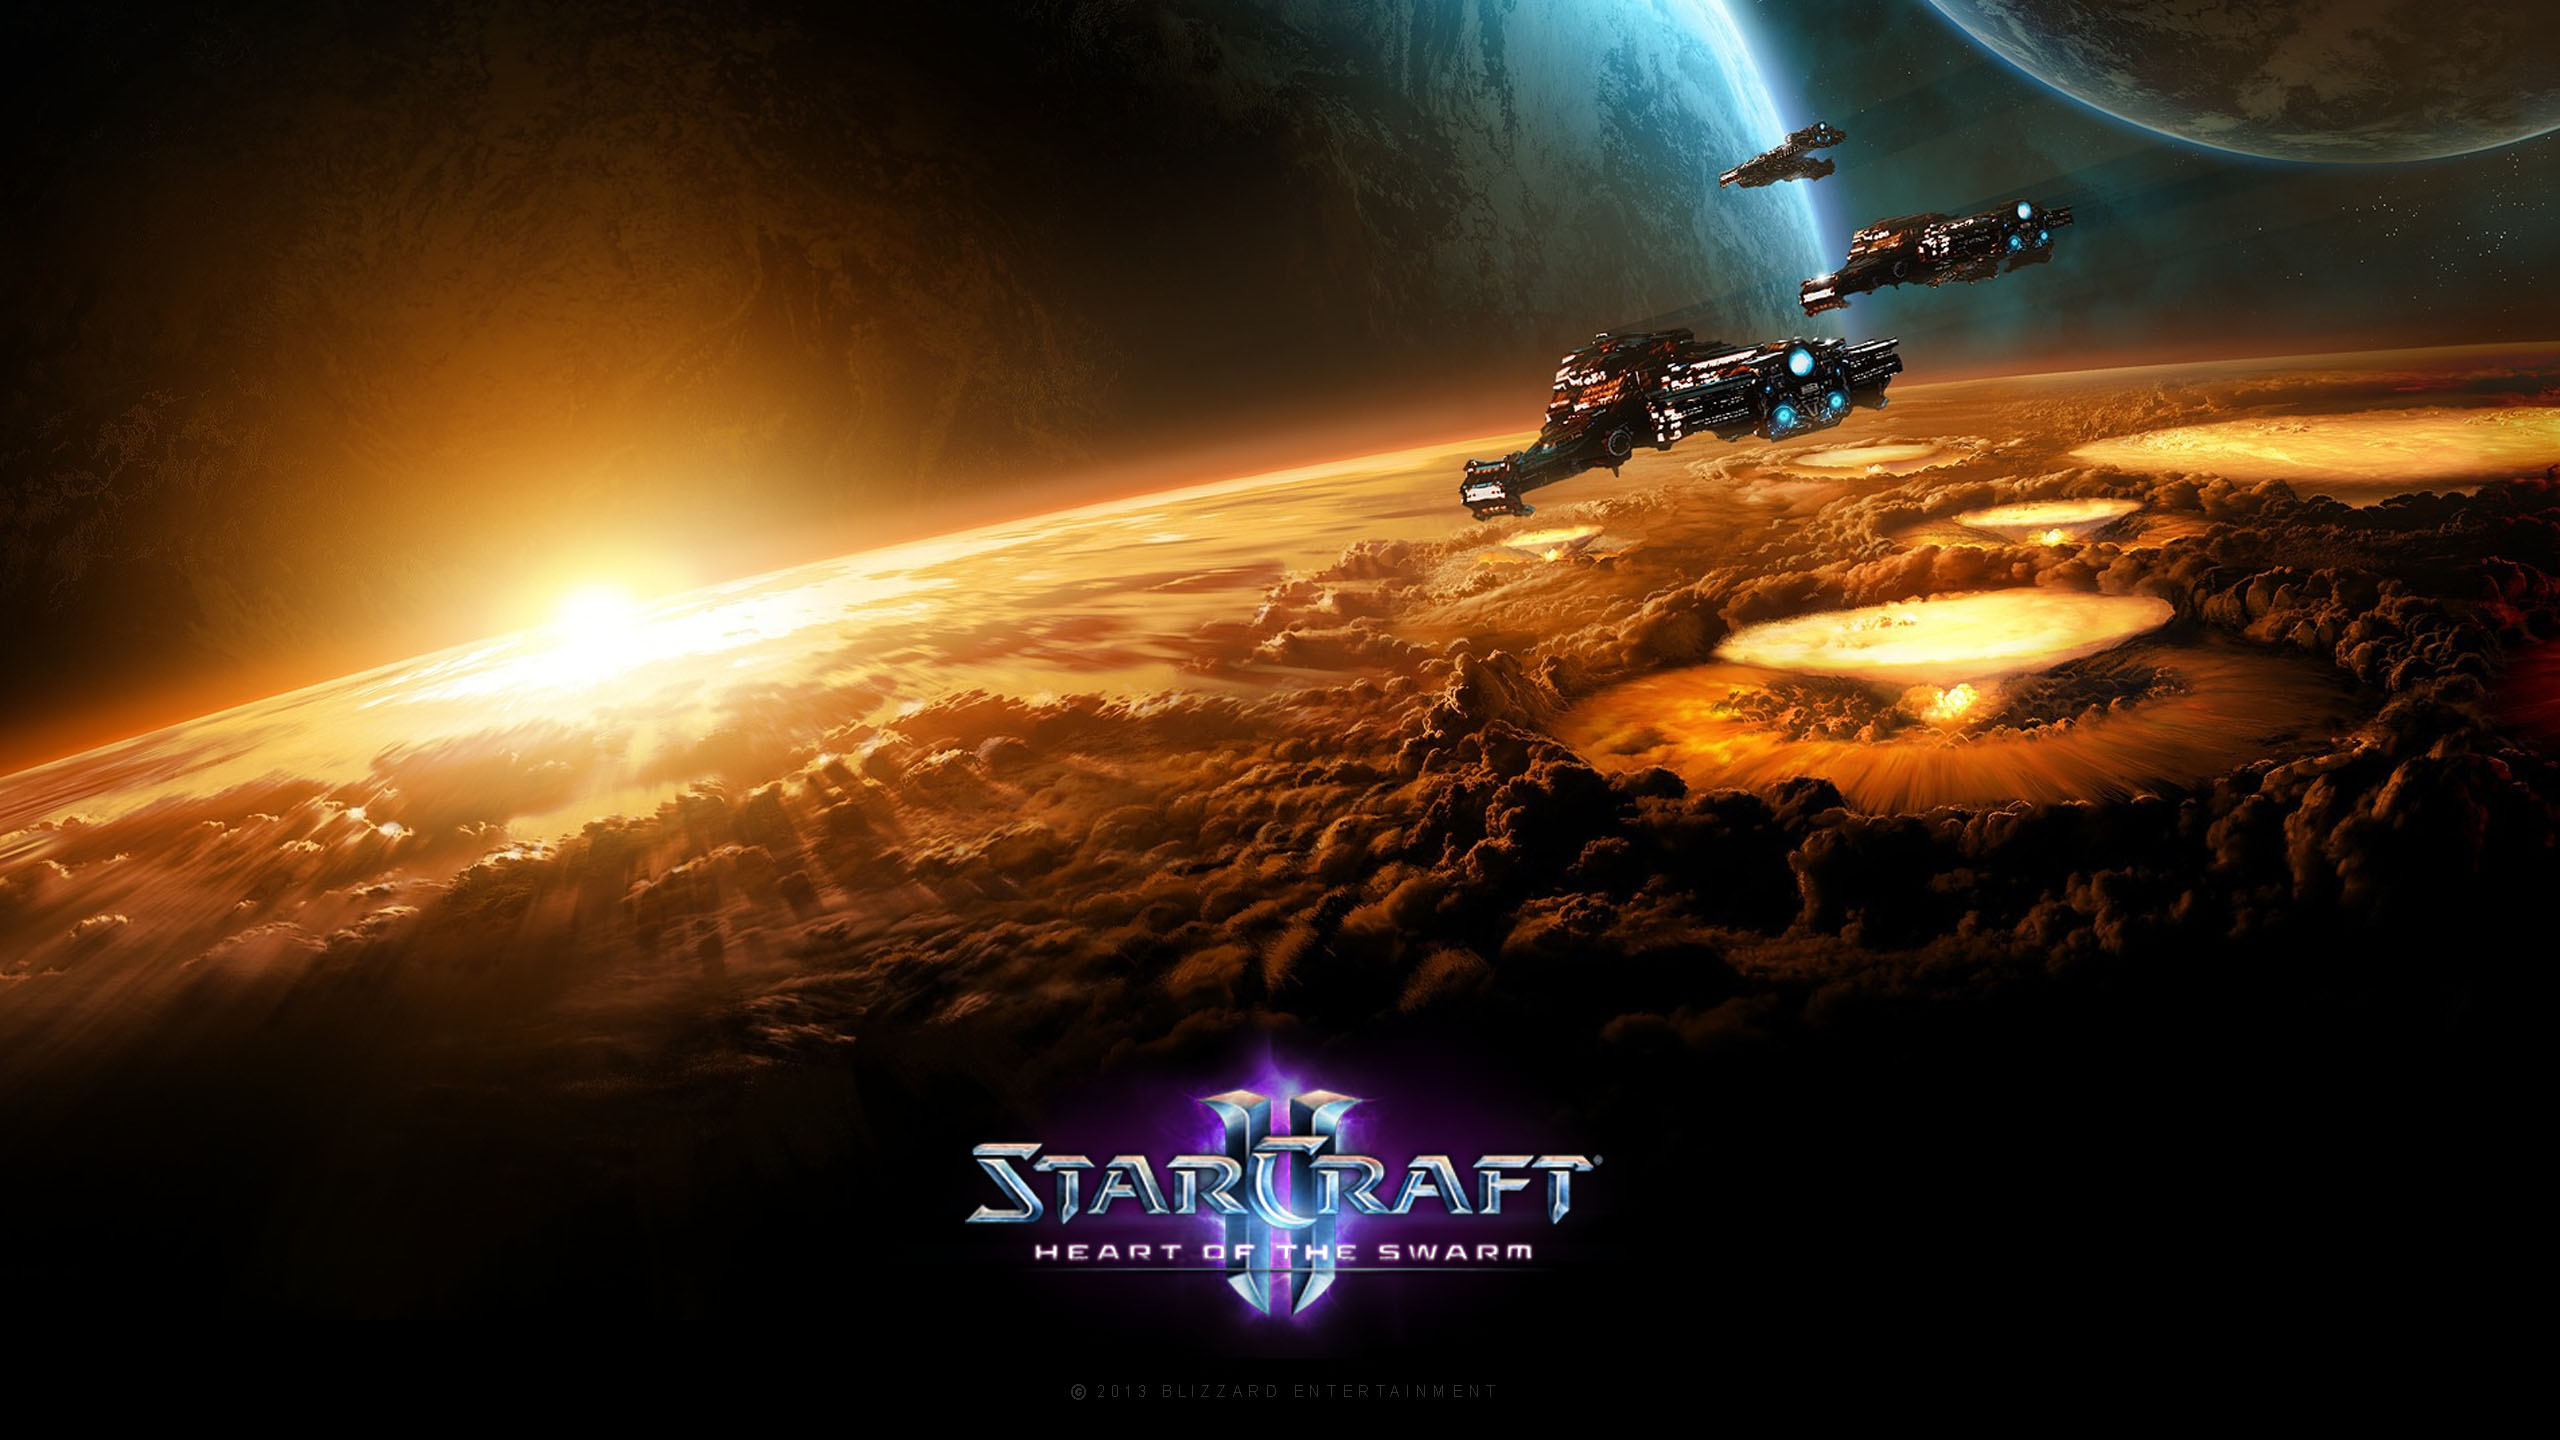 Wallpaper Starcraft medic marine art desktop wallpaper » Games